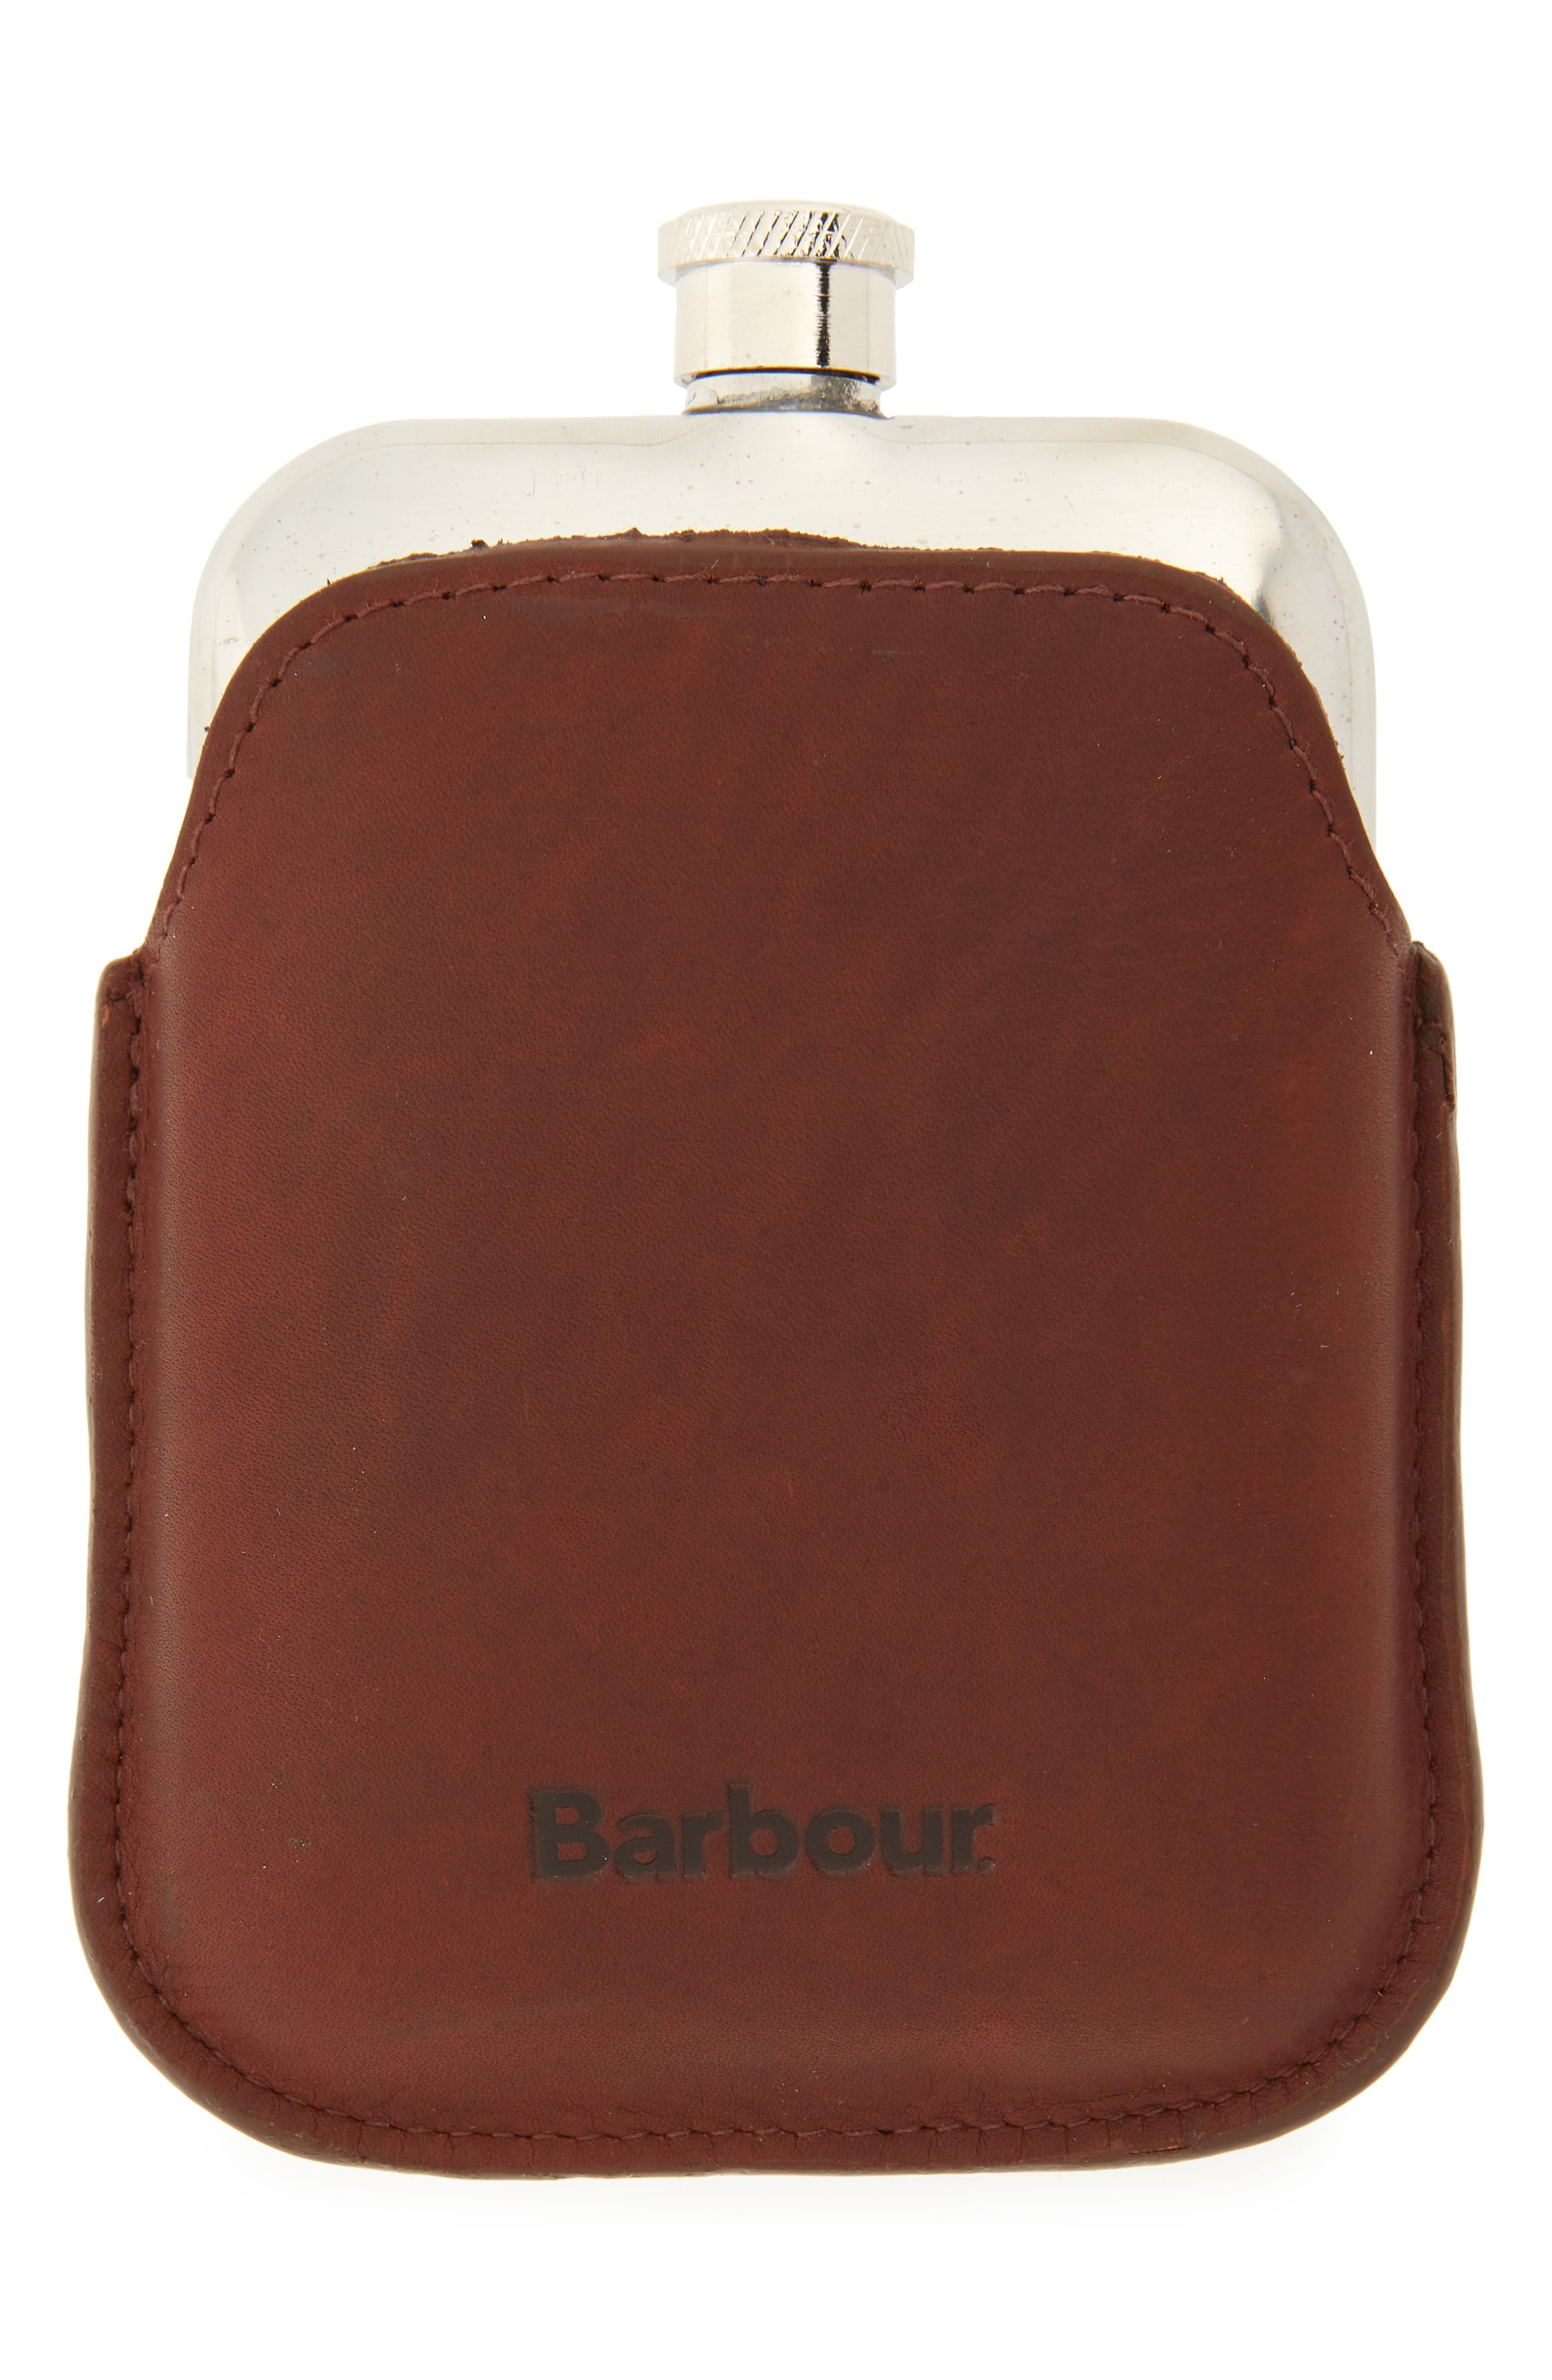 BARBOUR Waxed Leather Flask, Main, color, DARK BROWN